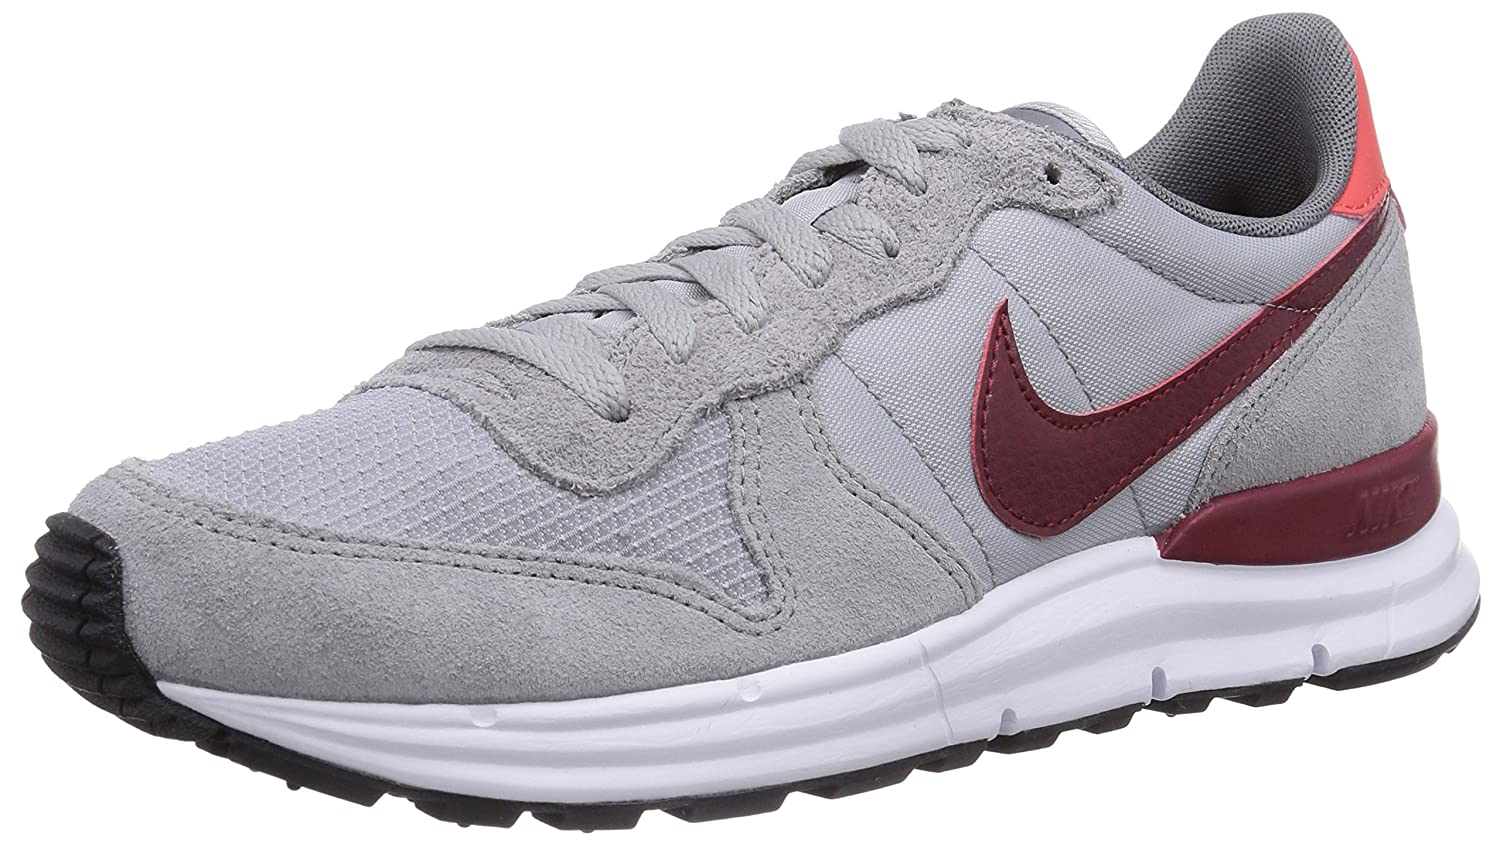 9a7b6e1cc69a ... coupon for nike herren lunar internationalist low top grau wolf grey  team daring red 45.5 eu